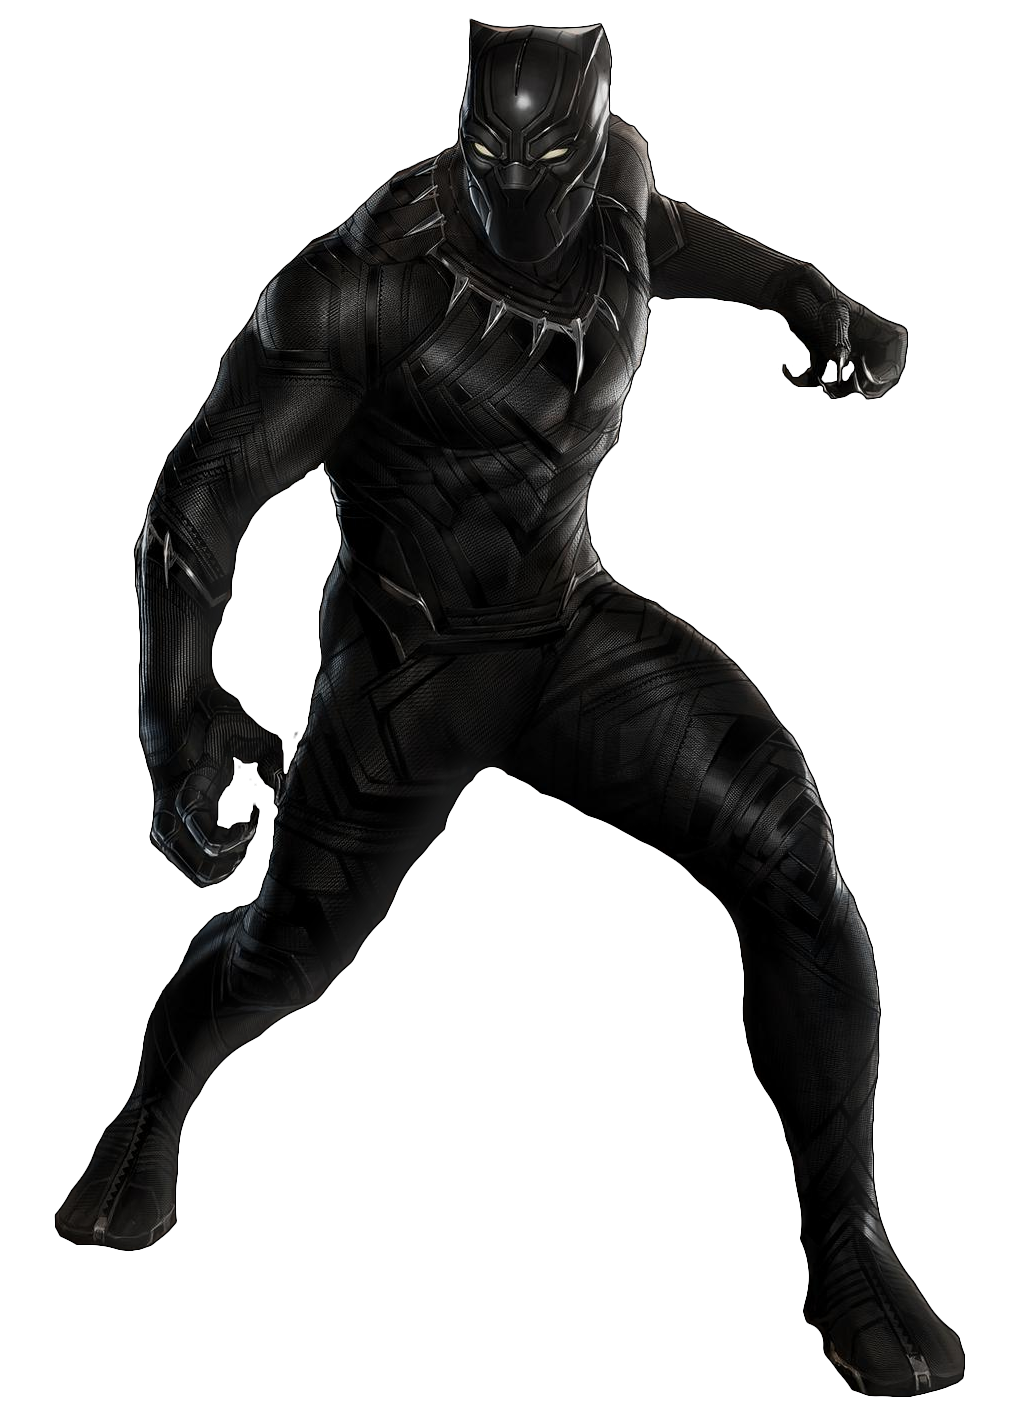 Black panther png. Image marvel movies fandom